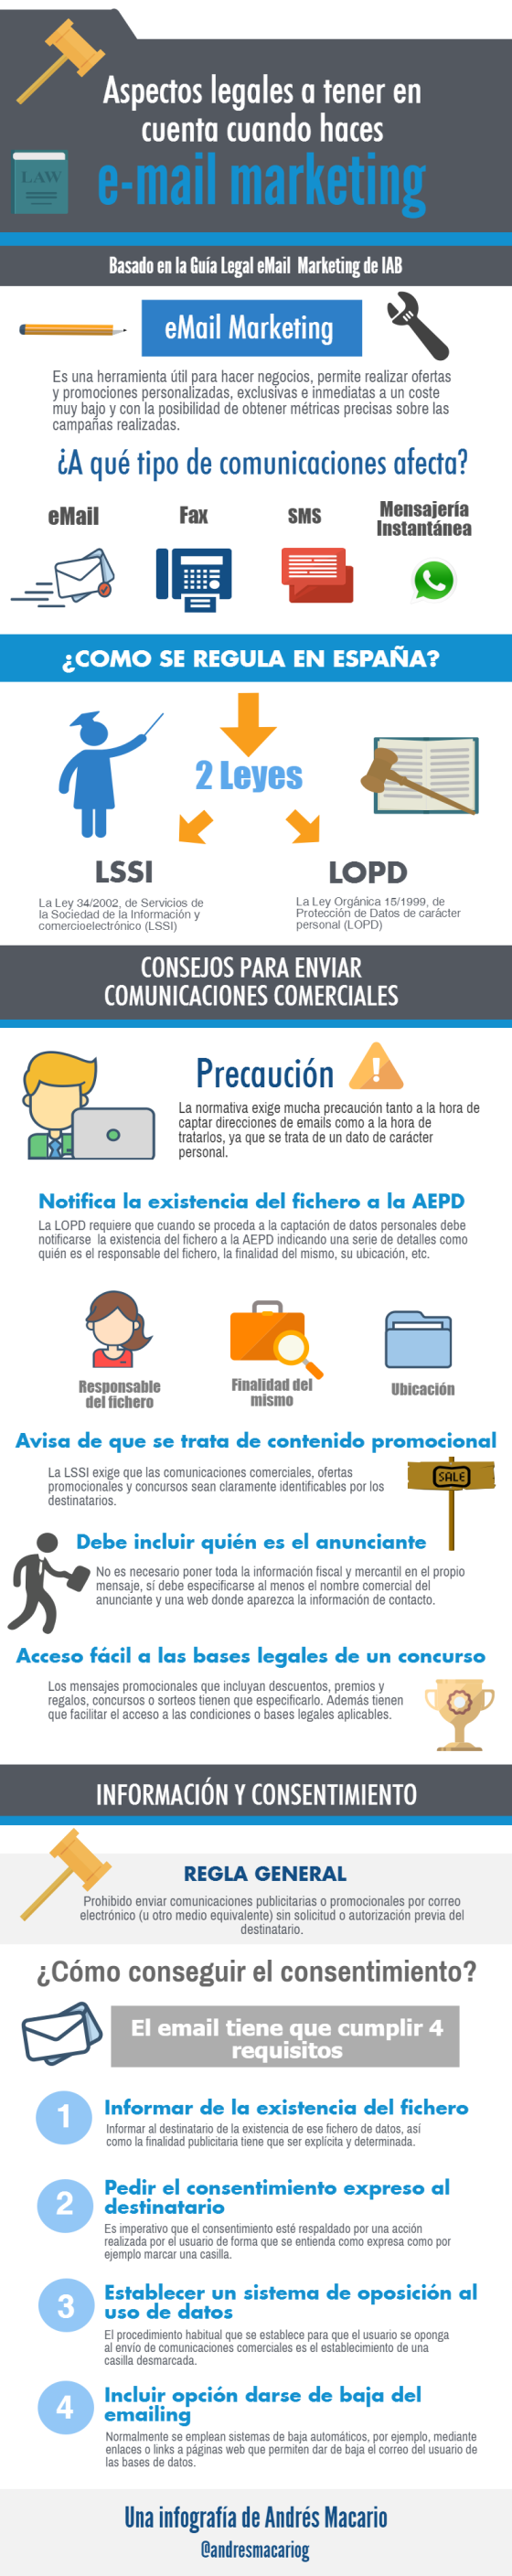 Aspectos legales email marketing- Infografia Andres Macario